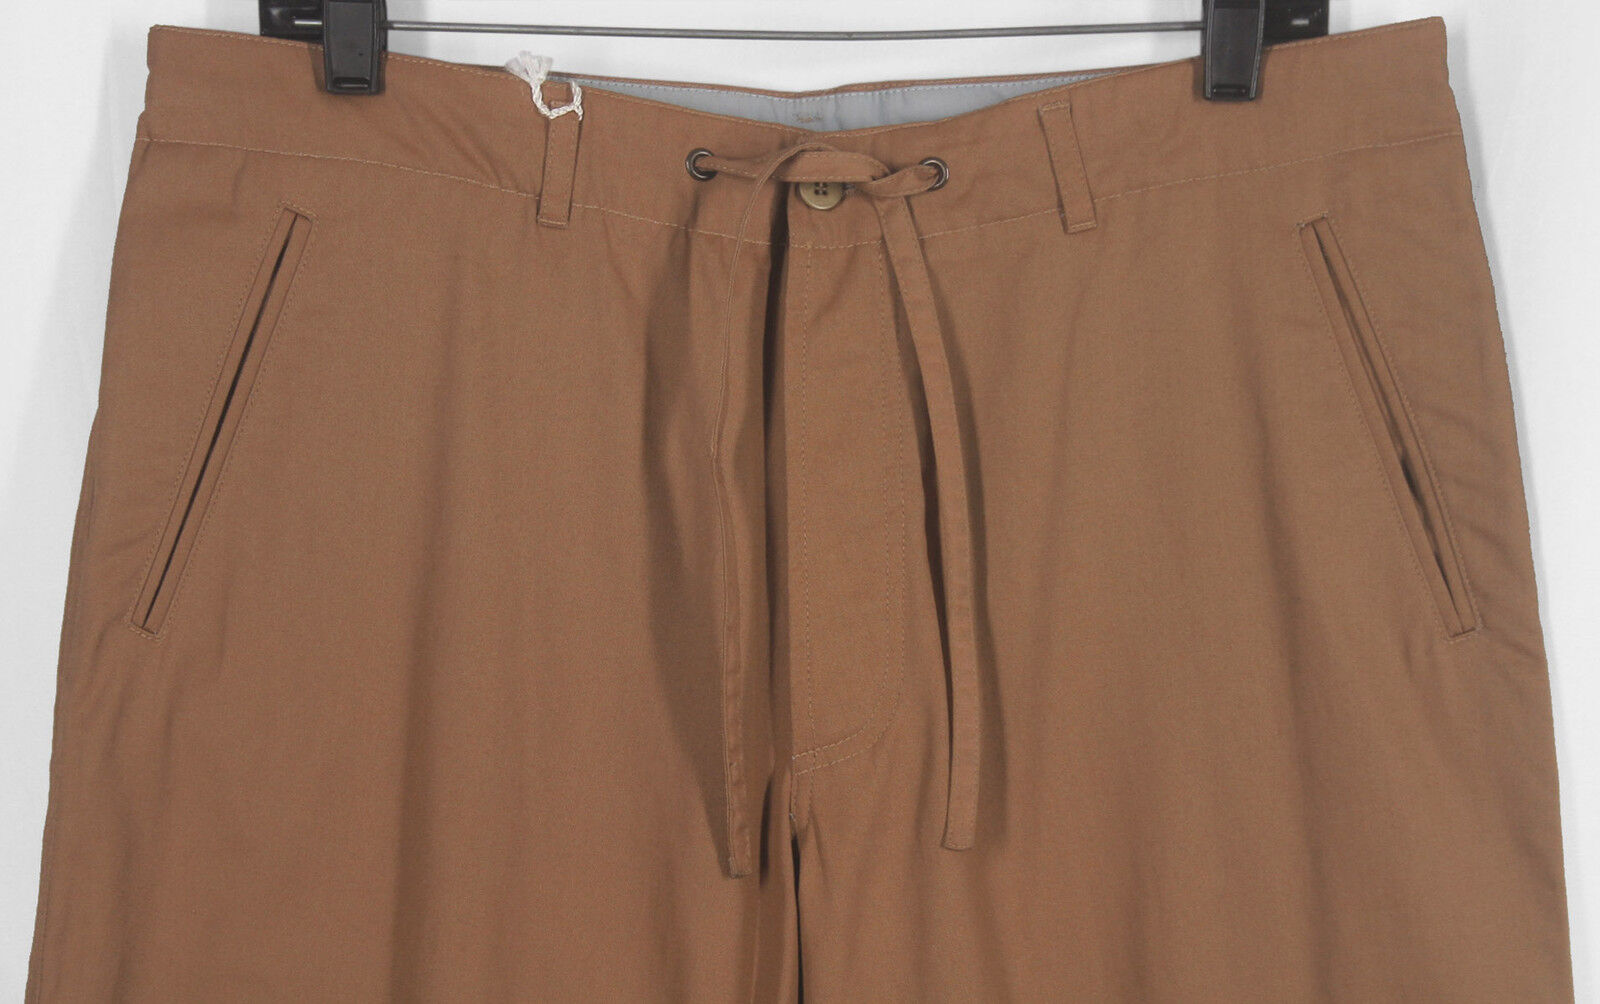 NWT ISAIA HAND_MADE_100% COTTON PALE-COPPER CASUAL LEISURE PANTS W34½ 12775